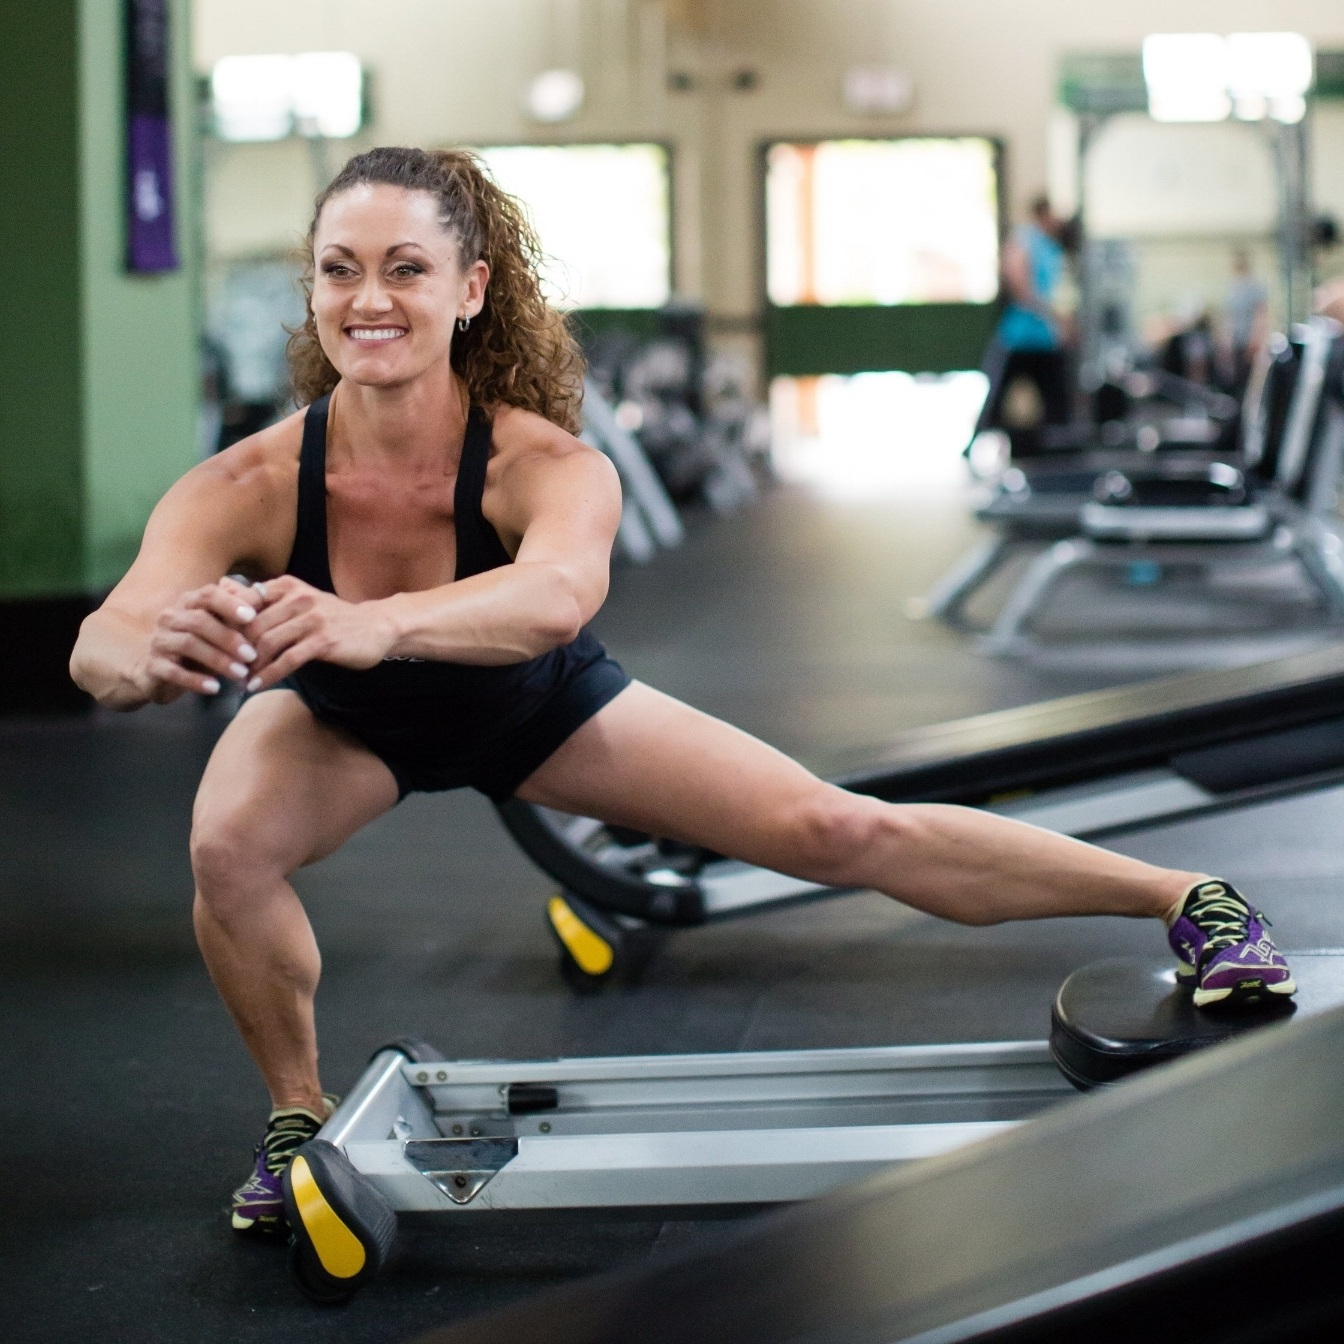 Point Loma Sports Club-04 Trainer Workouts-0118.jpg